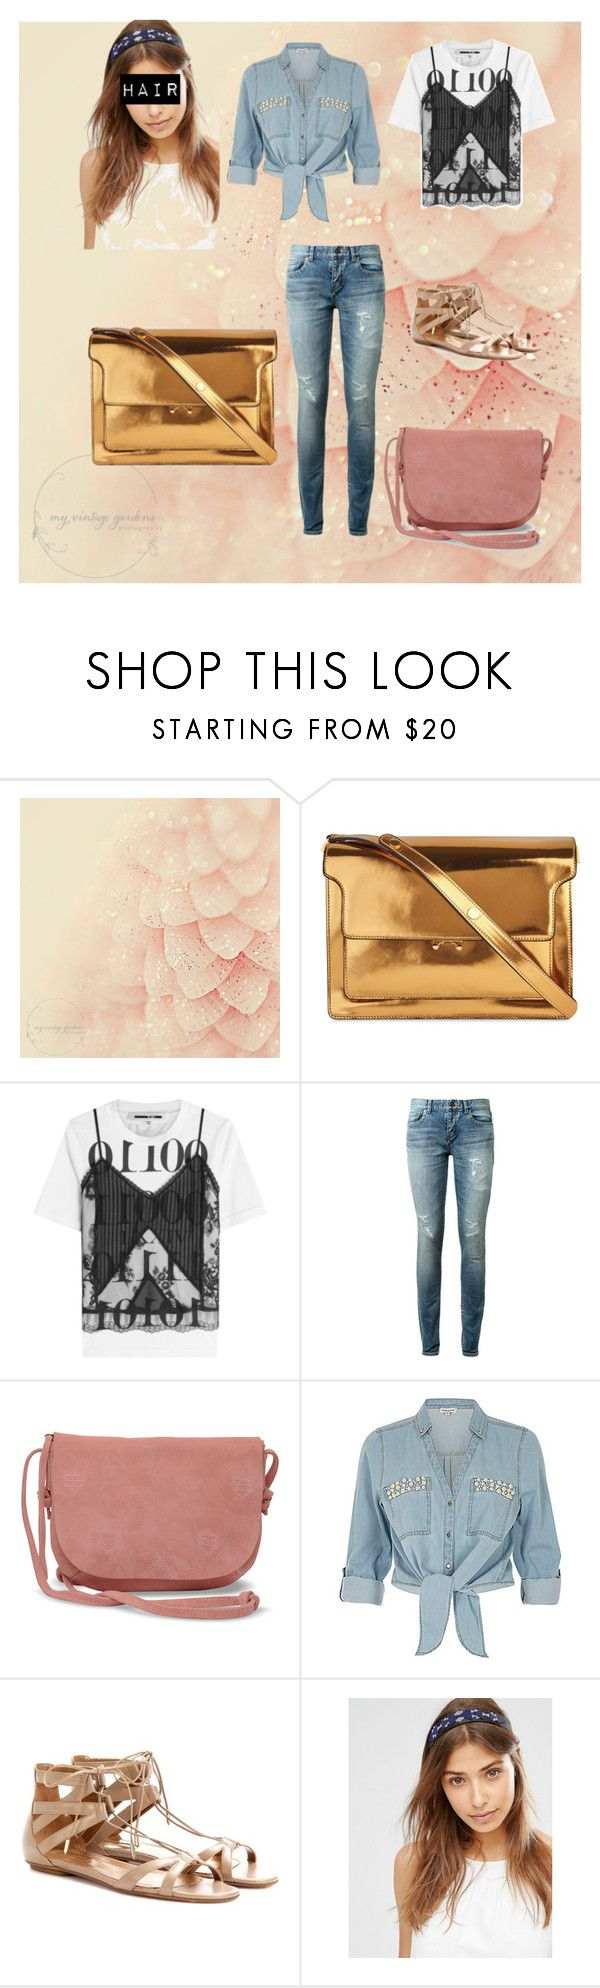 """""""Untitled #31"""" by marpocorn ❤ liked on Polyvore featuring beauty, Marni, McQ by Alexander McQueen, Yves Saint Laurent, TOMS, ZAK, Aquazzura and Made"""